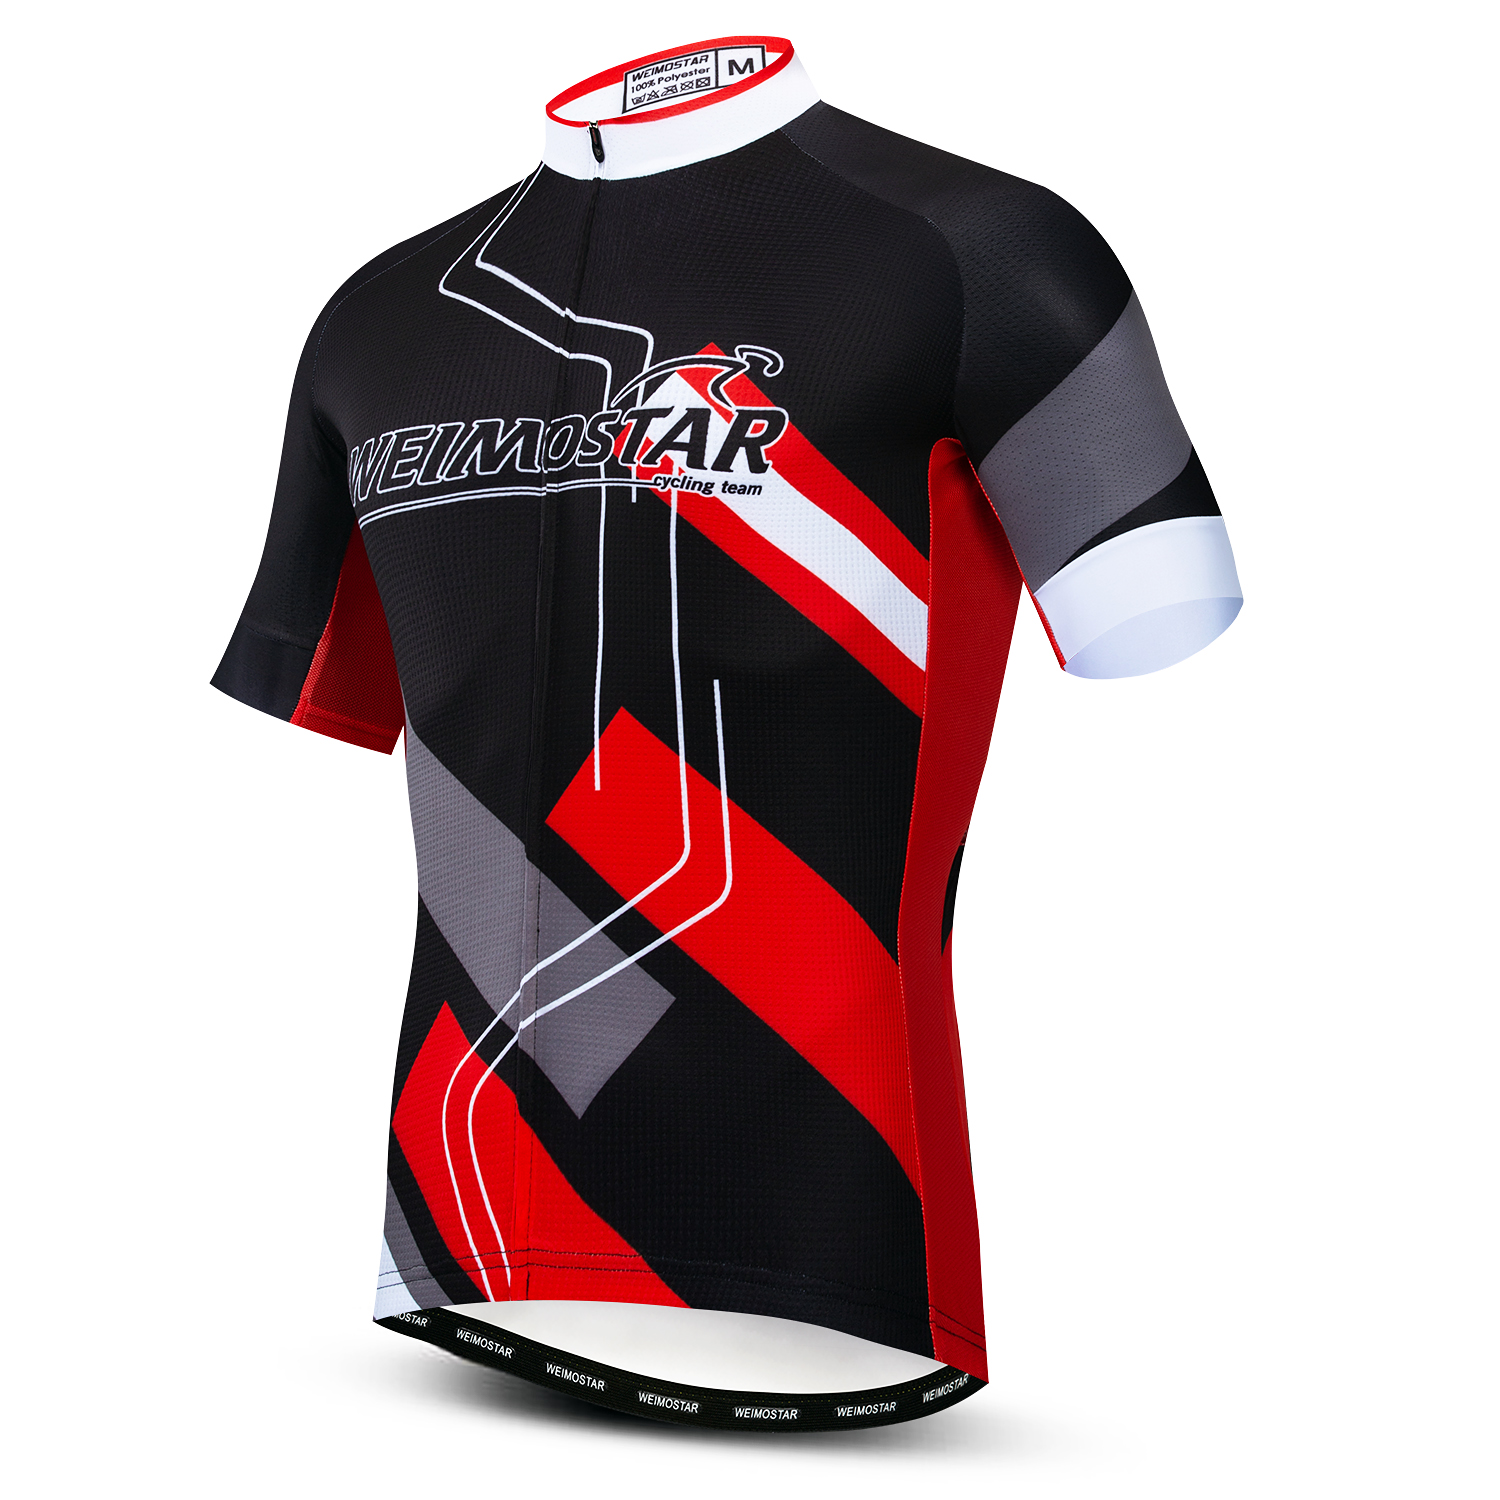 Mtb Jersey Shirt Short-Sleeve Mountain-Bike-Clothing Bicycle Road-Cycling Pro-Team Weimostar